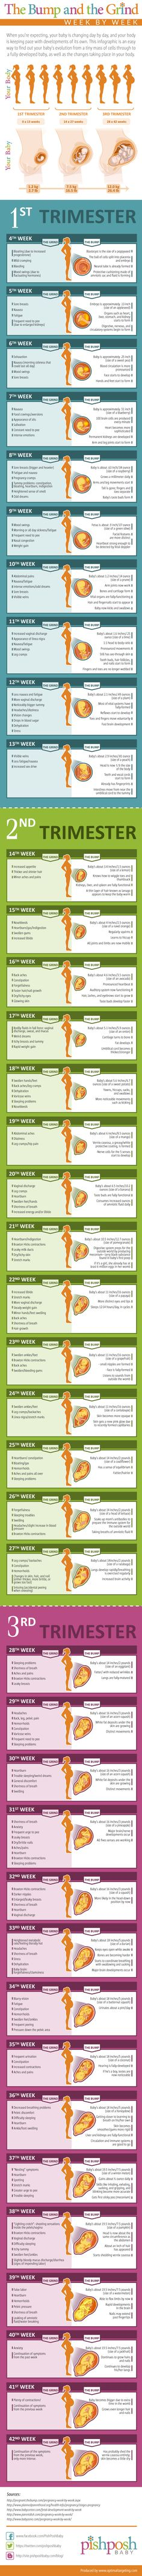 Pregnancy Week by Week Chart - Fun - - Schwanger - Pregnant Tips Pregnancy Chart, Pregnancy Info, Pregnancy Weeks, Early Pregnancy, Pregnancy Timeline, Pregnancy Trimester Chart, Pregnancy Health, Pregnancy Symptoms By Week, Pregnancy Facts